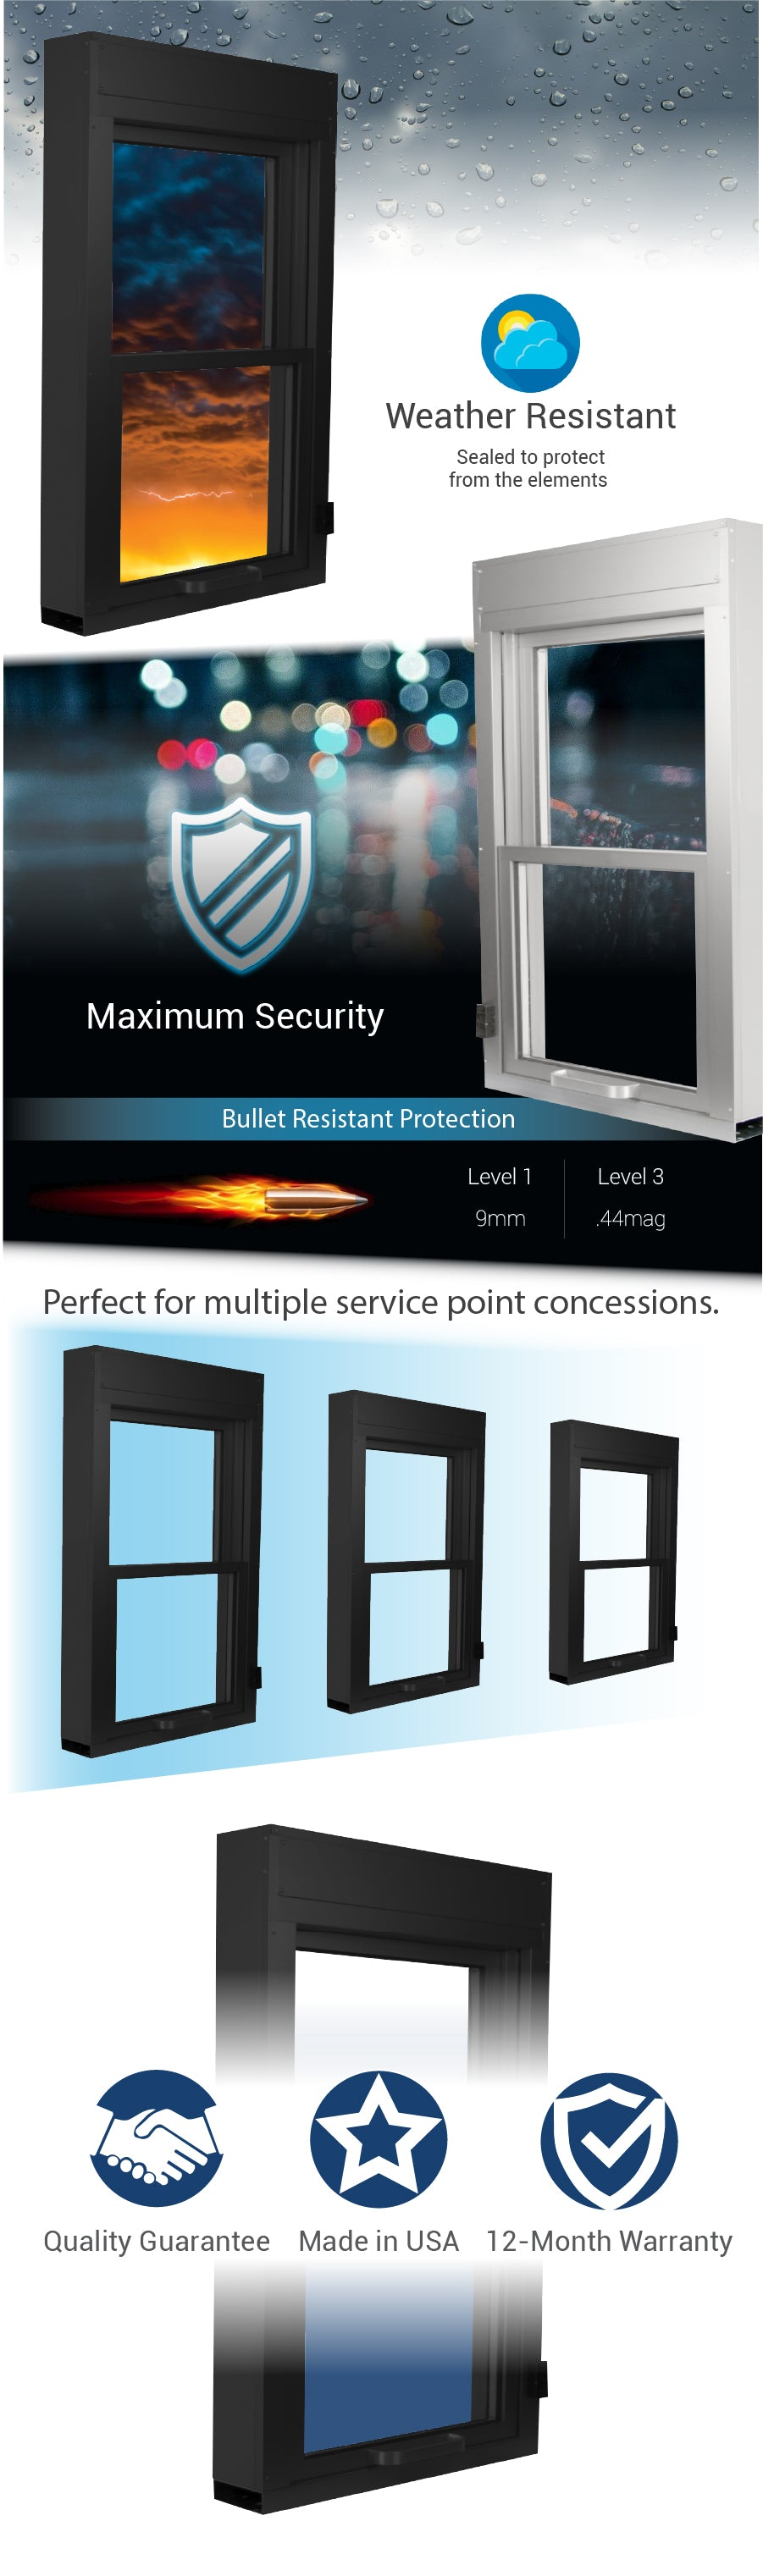 SUI Series vertical lift window drive thru Covenant security equipment